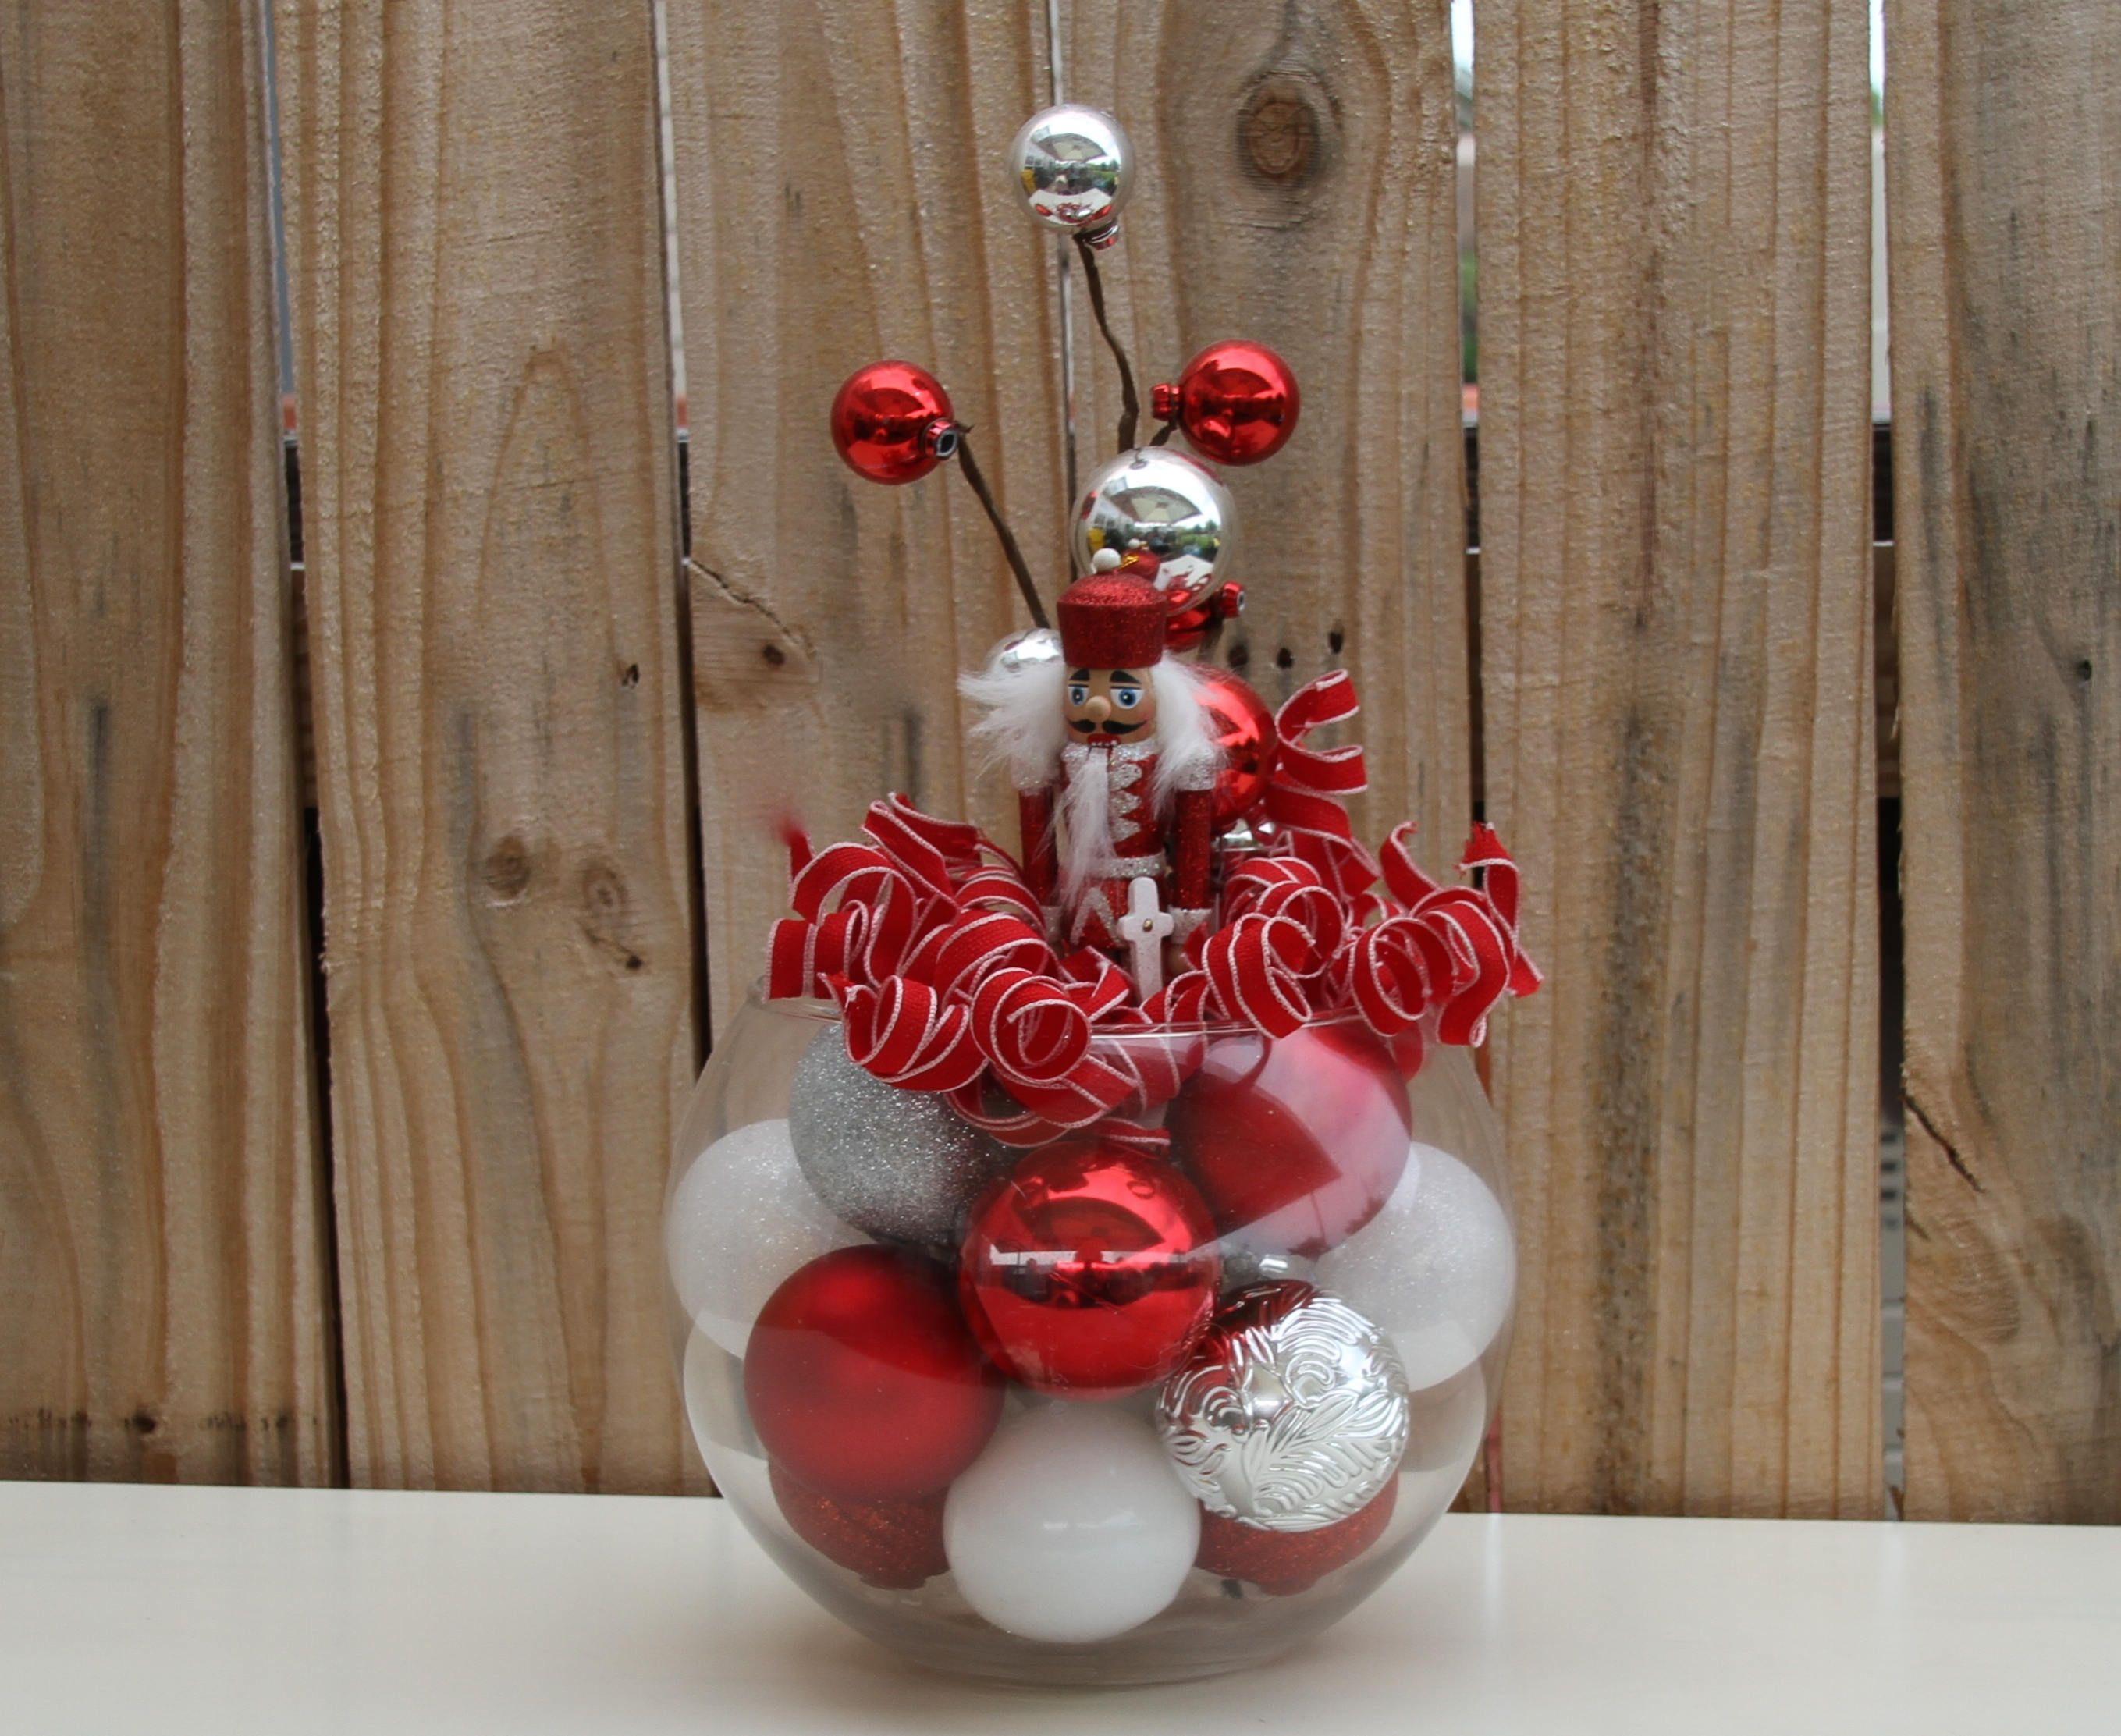 Nutcracker Christmas Centerpiece Red And Silver Holiday Home Decor Christmas Part Silver Christmas Decorations Christmas Centerpieces Christmas Decorations